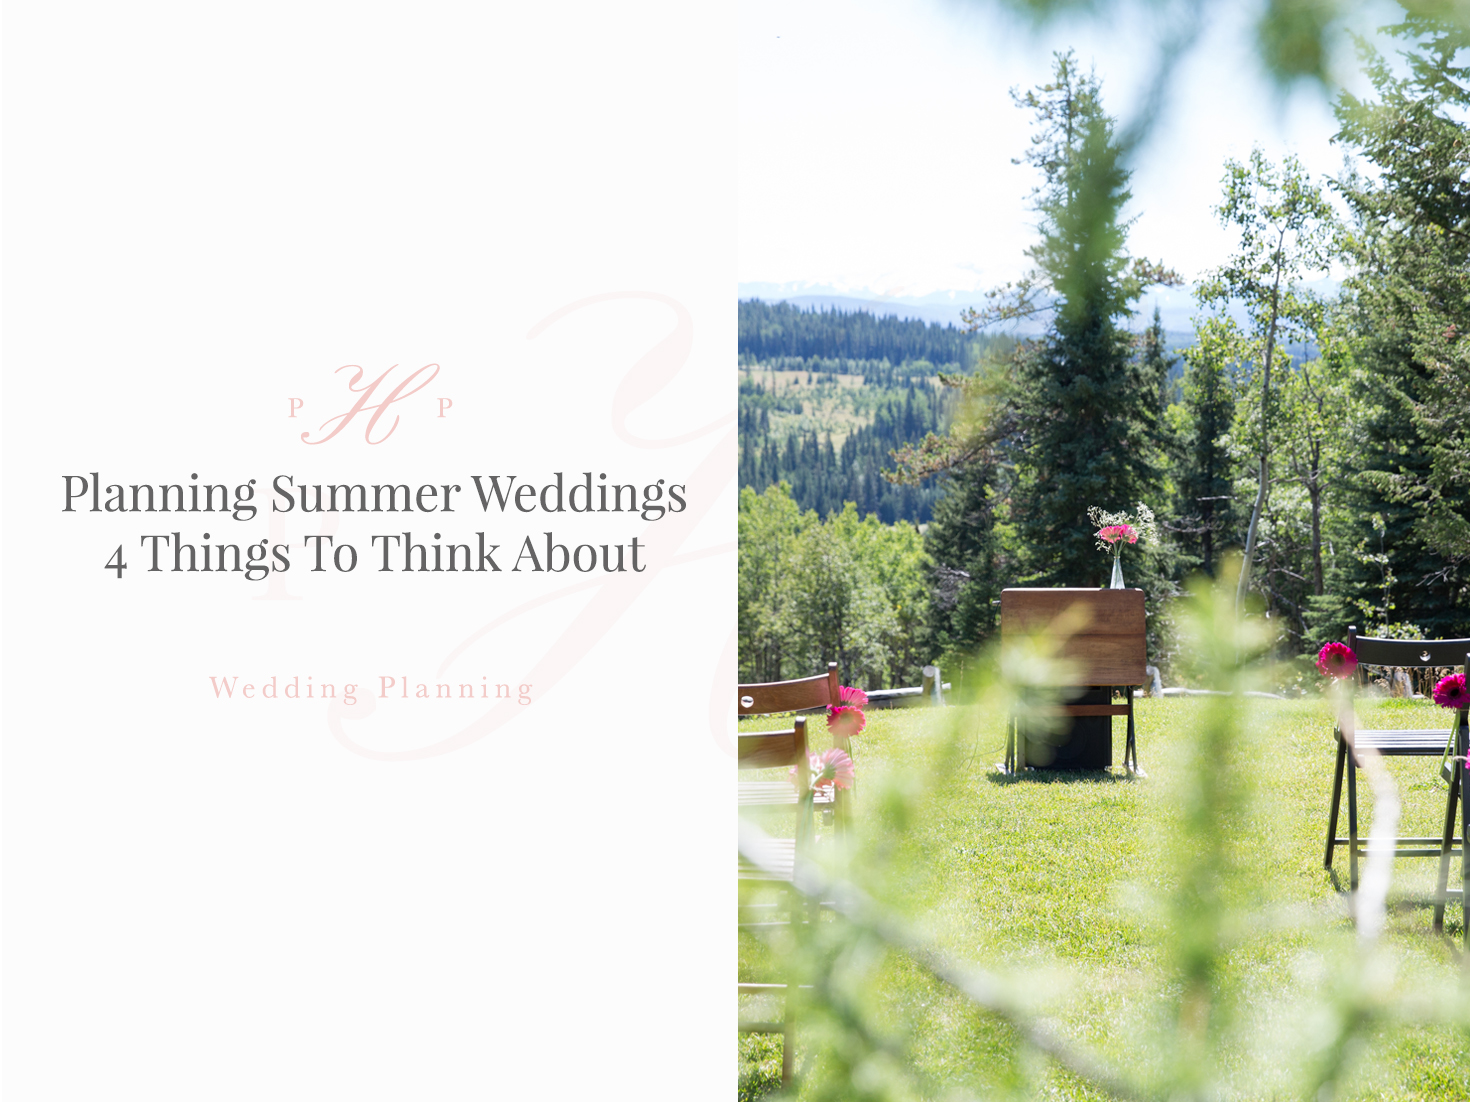 Planning Summer Weddings: 4 Things To Think About